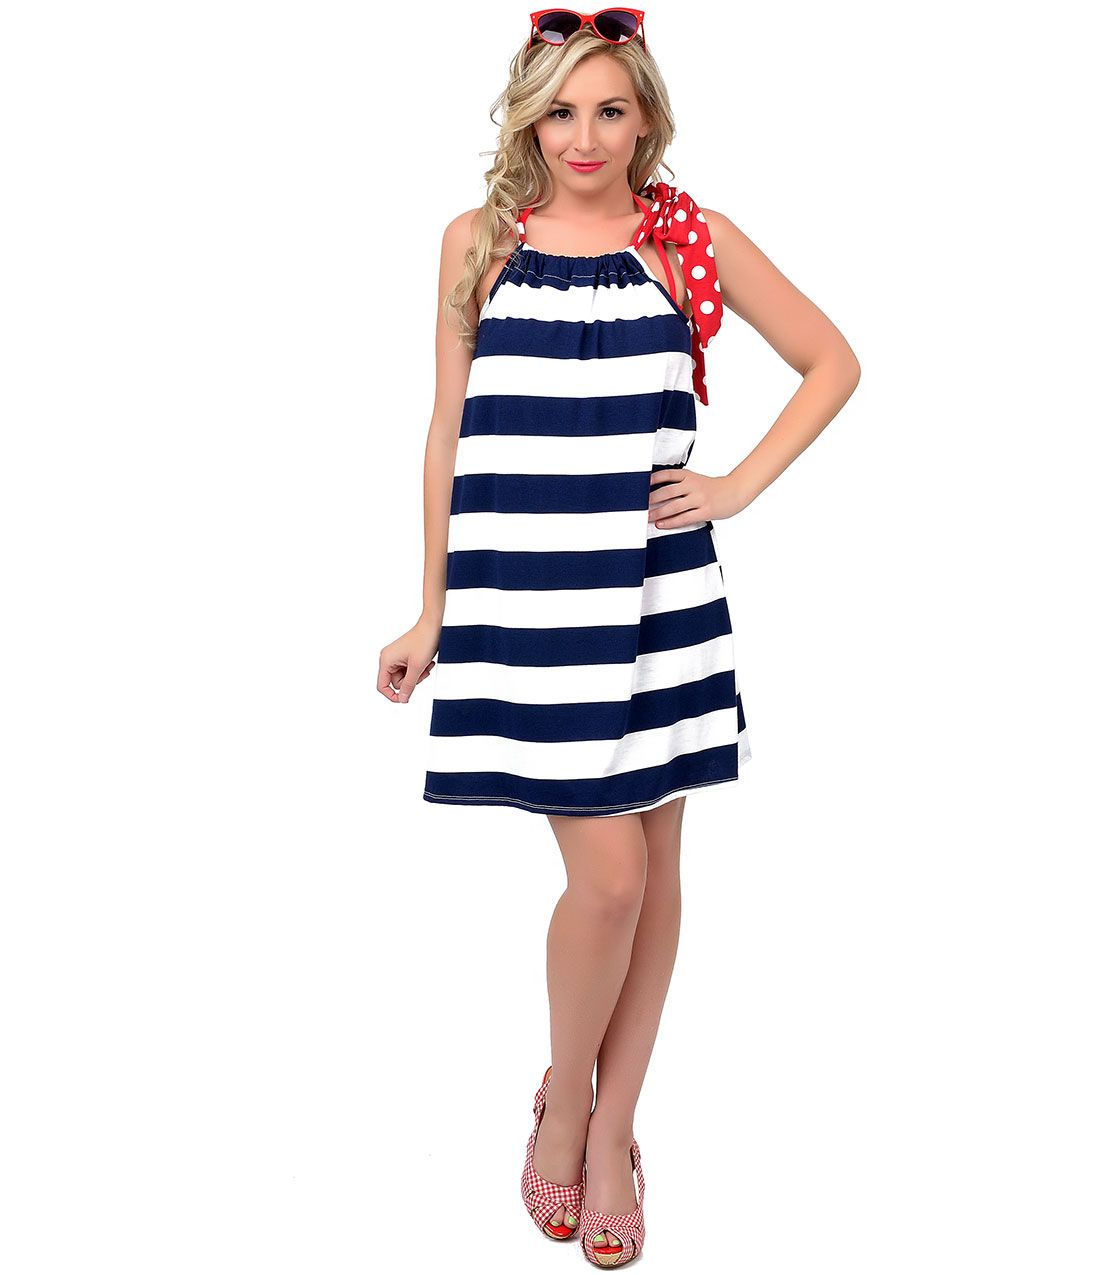 Nautical swimsuit cover up - navy white red